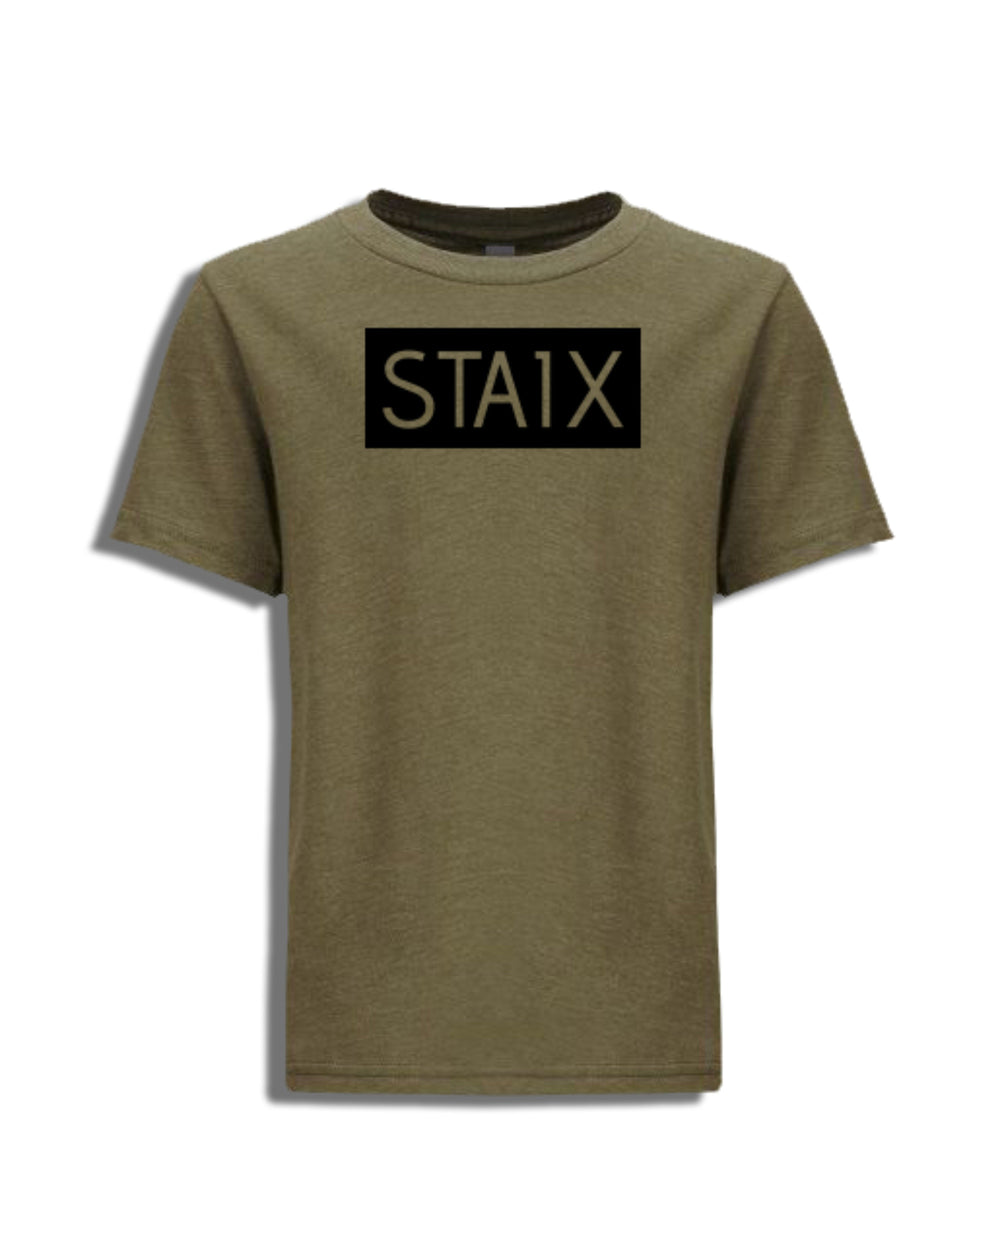 KIDS BOXER TEE - ARMY GREEN STAIX XS